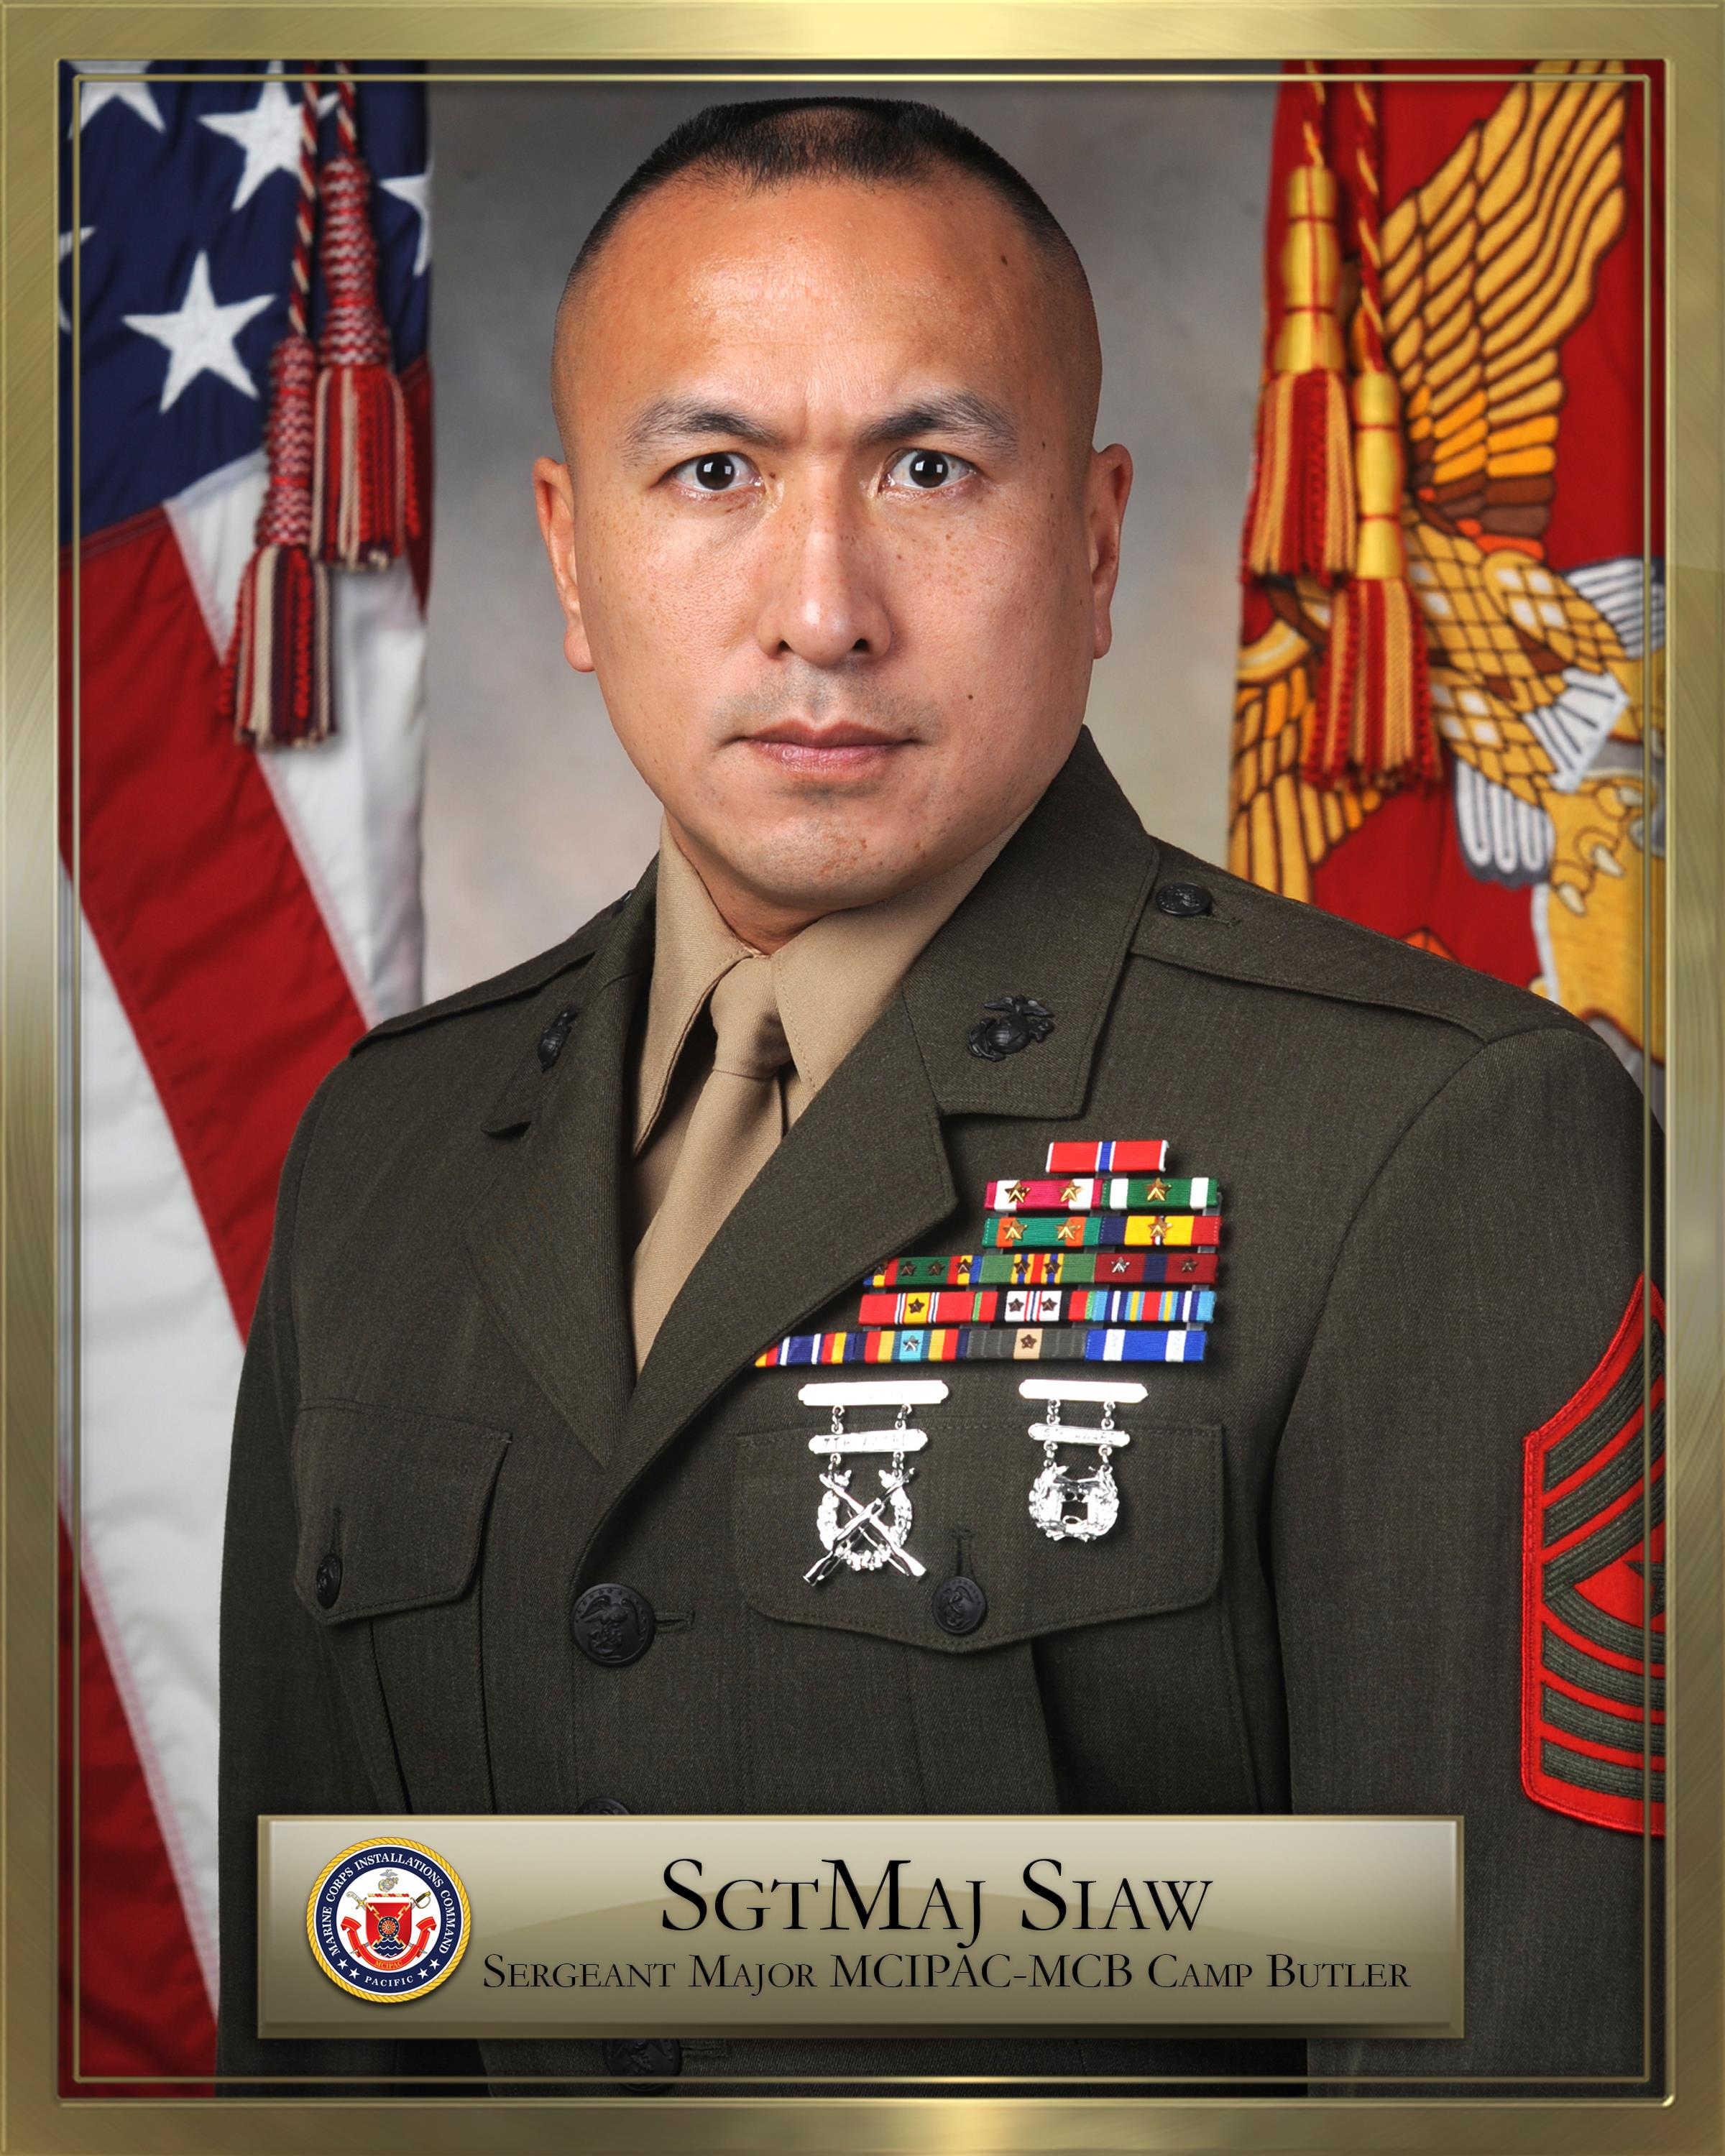 Sergeant Major Peter A Siaw gt Marine Corps Installations  : 020316 M PO474 001 from www.mcipac.marines.mil size 2400 x 3000 jpeg 708kB